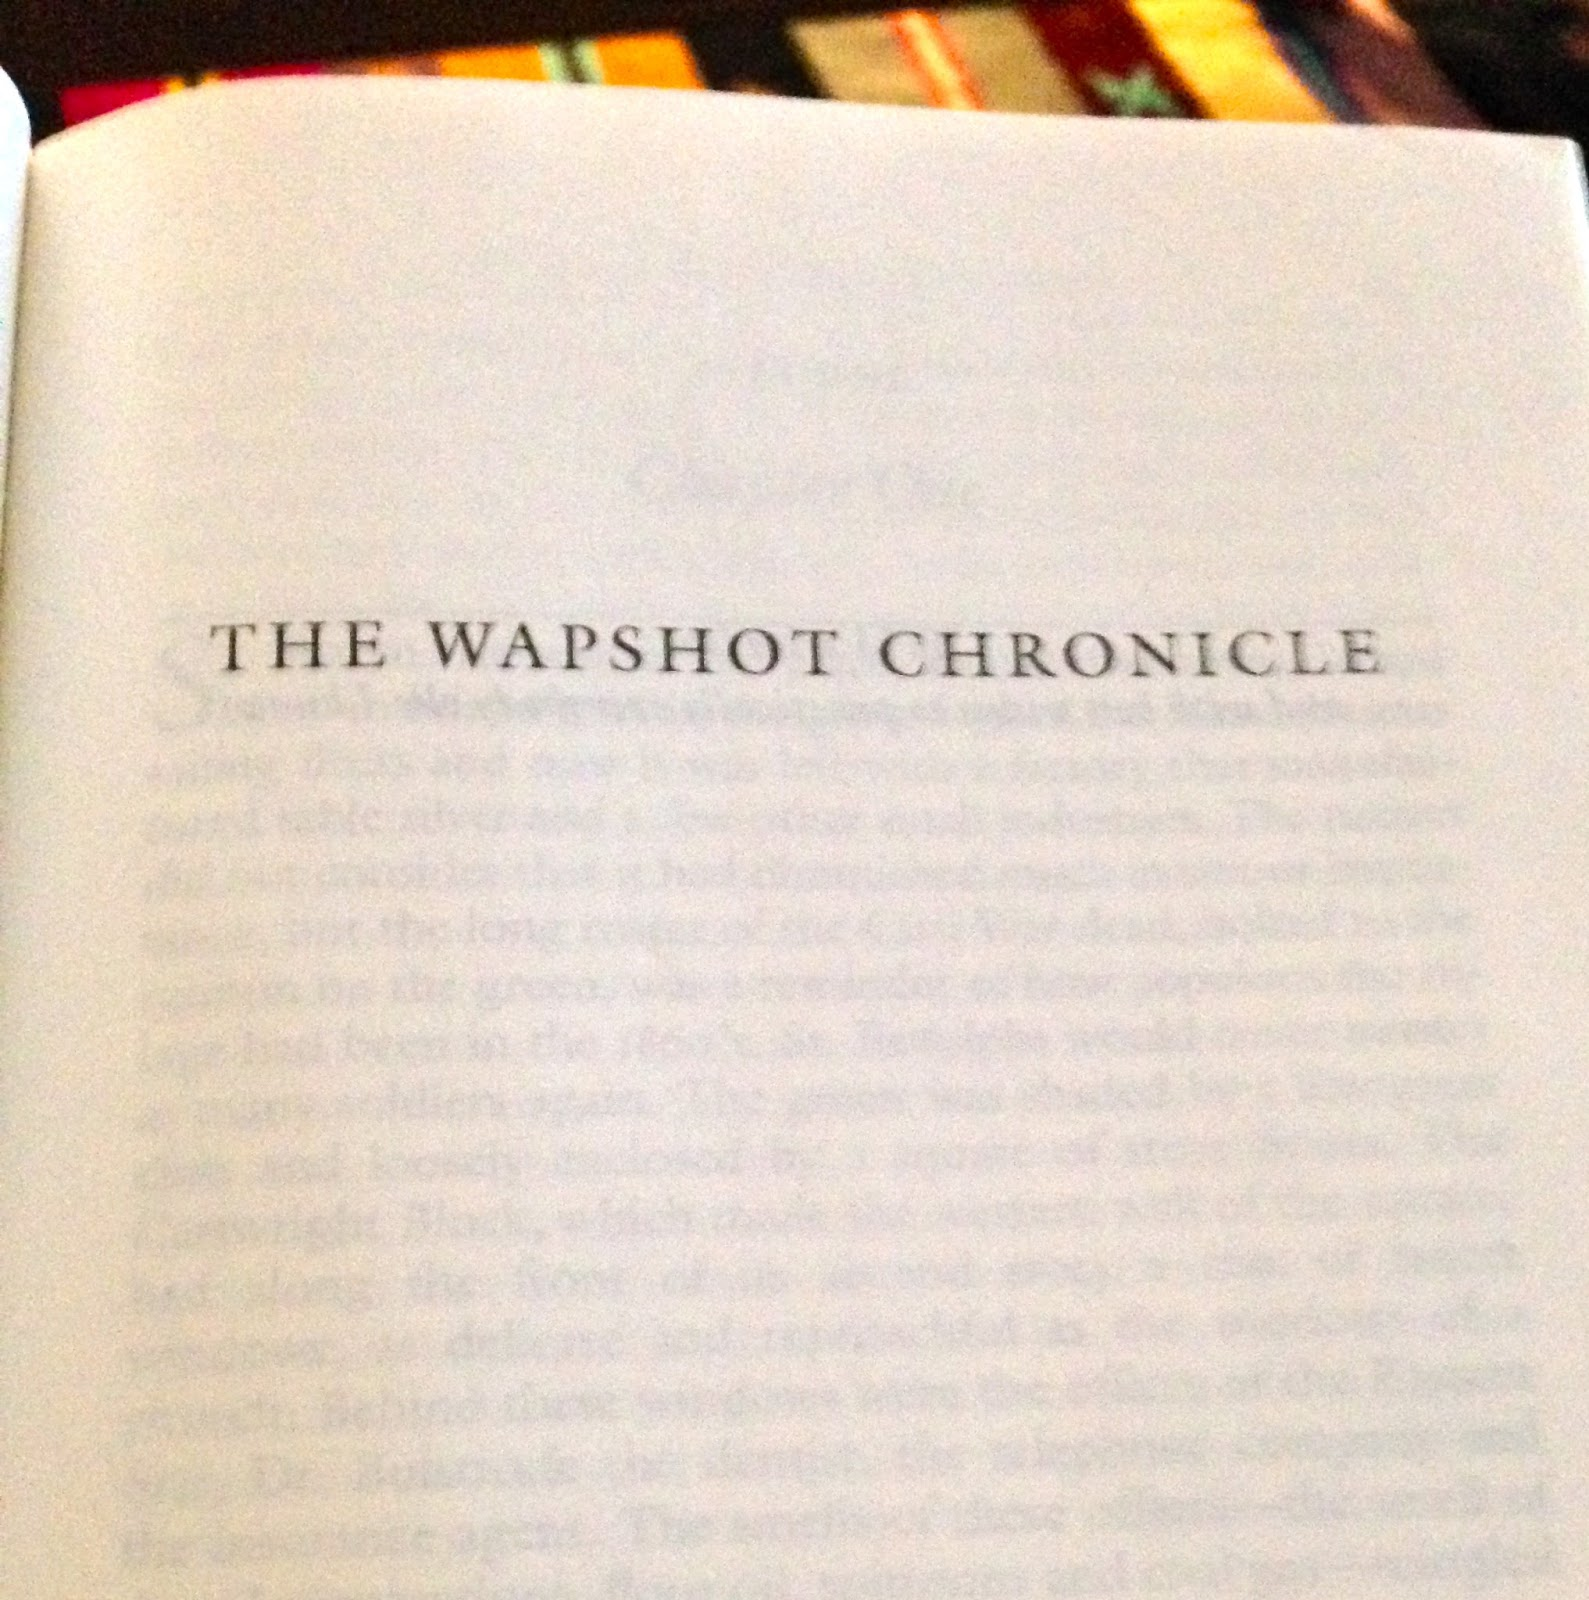 an analysis of the wapshot chronicle by john cheever The wapshot chronicle kirkus reviews issue: june 15th, 1957 more fiction & literature more by john cheever fiction john cheever by john cheever.